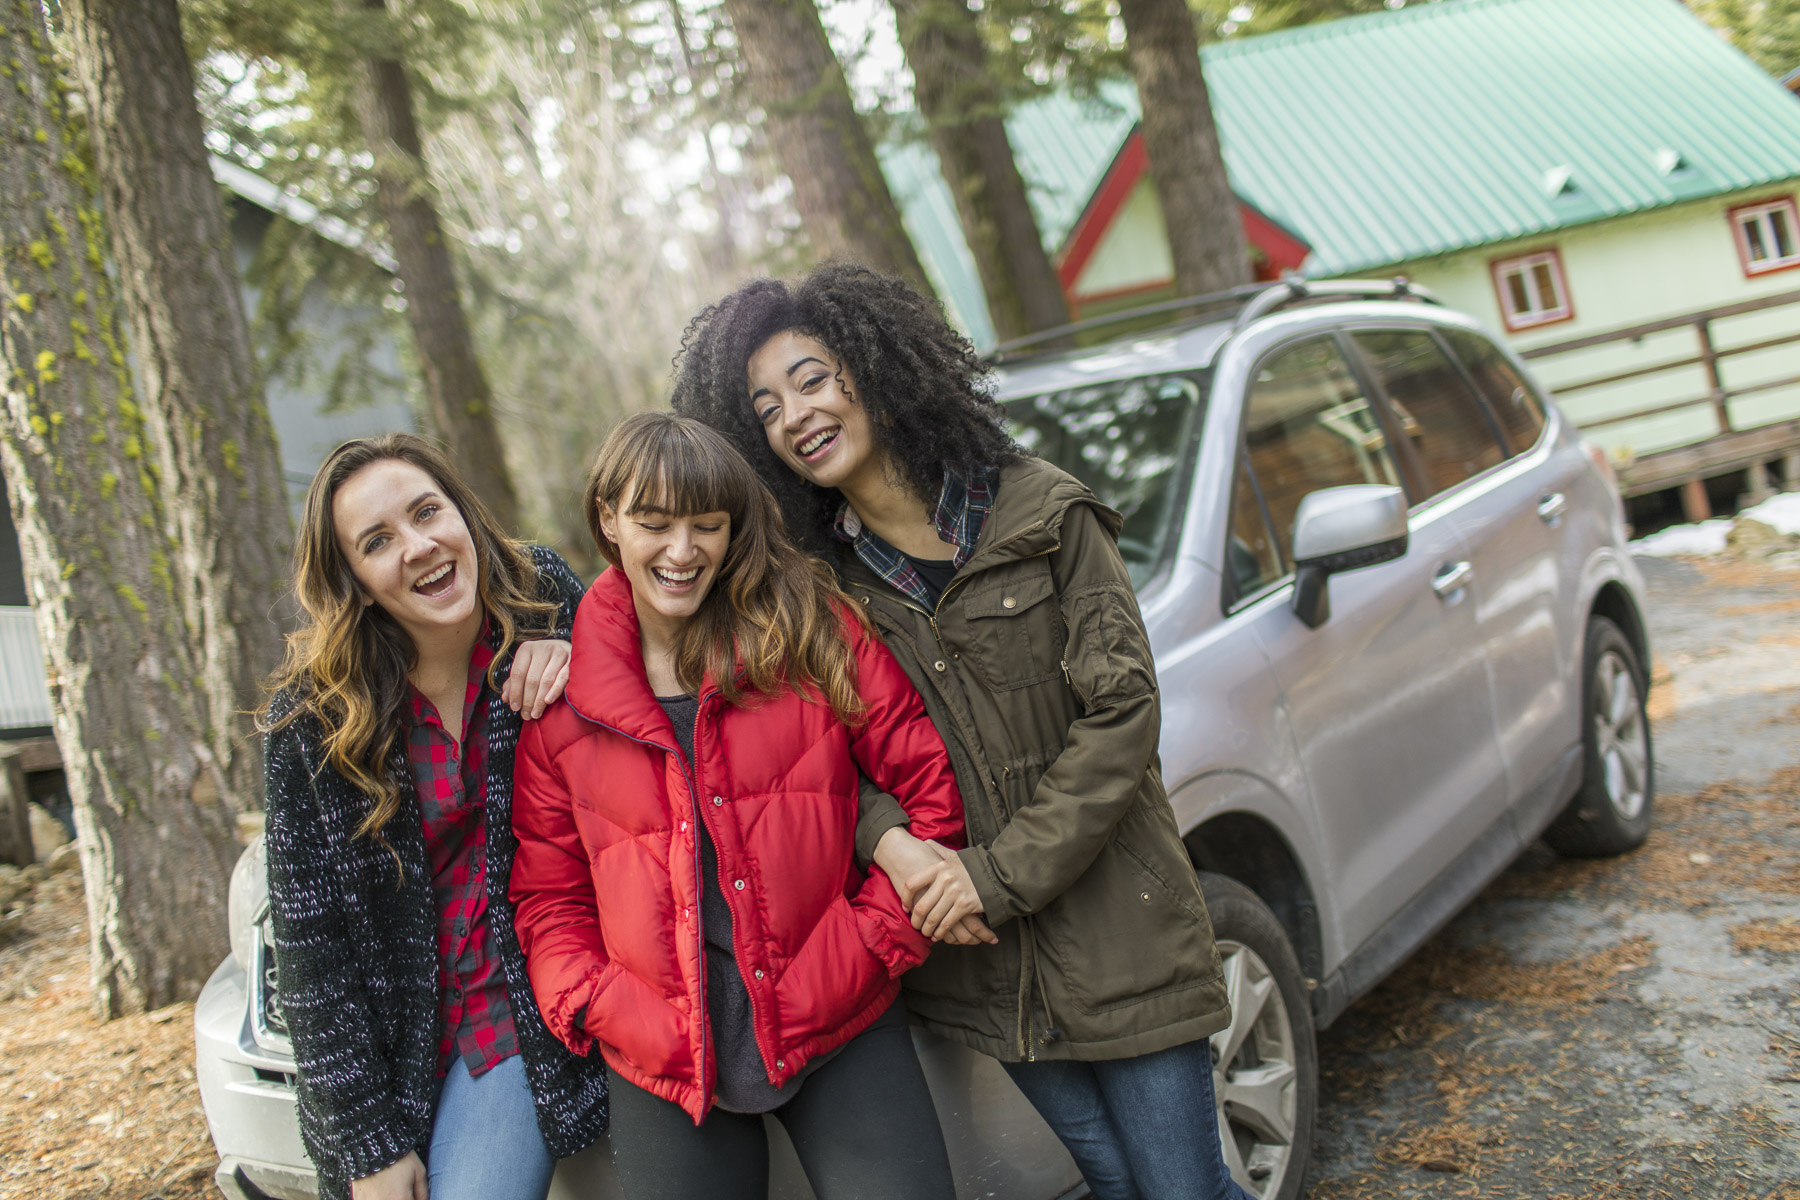 3 Girls Laughing on hood of car